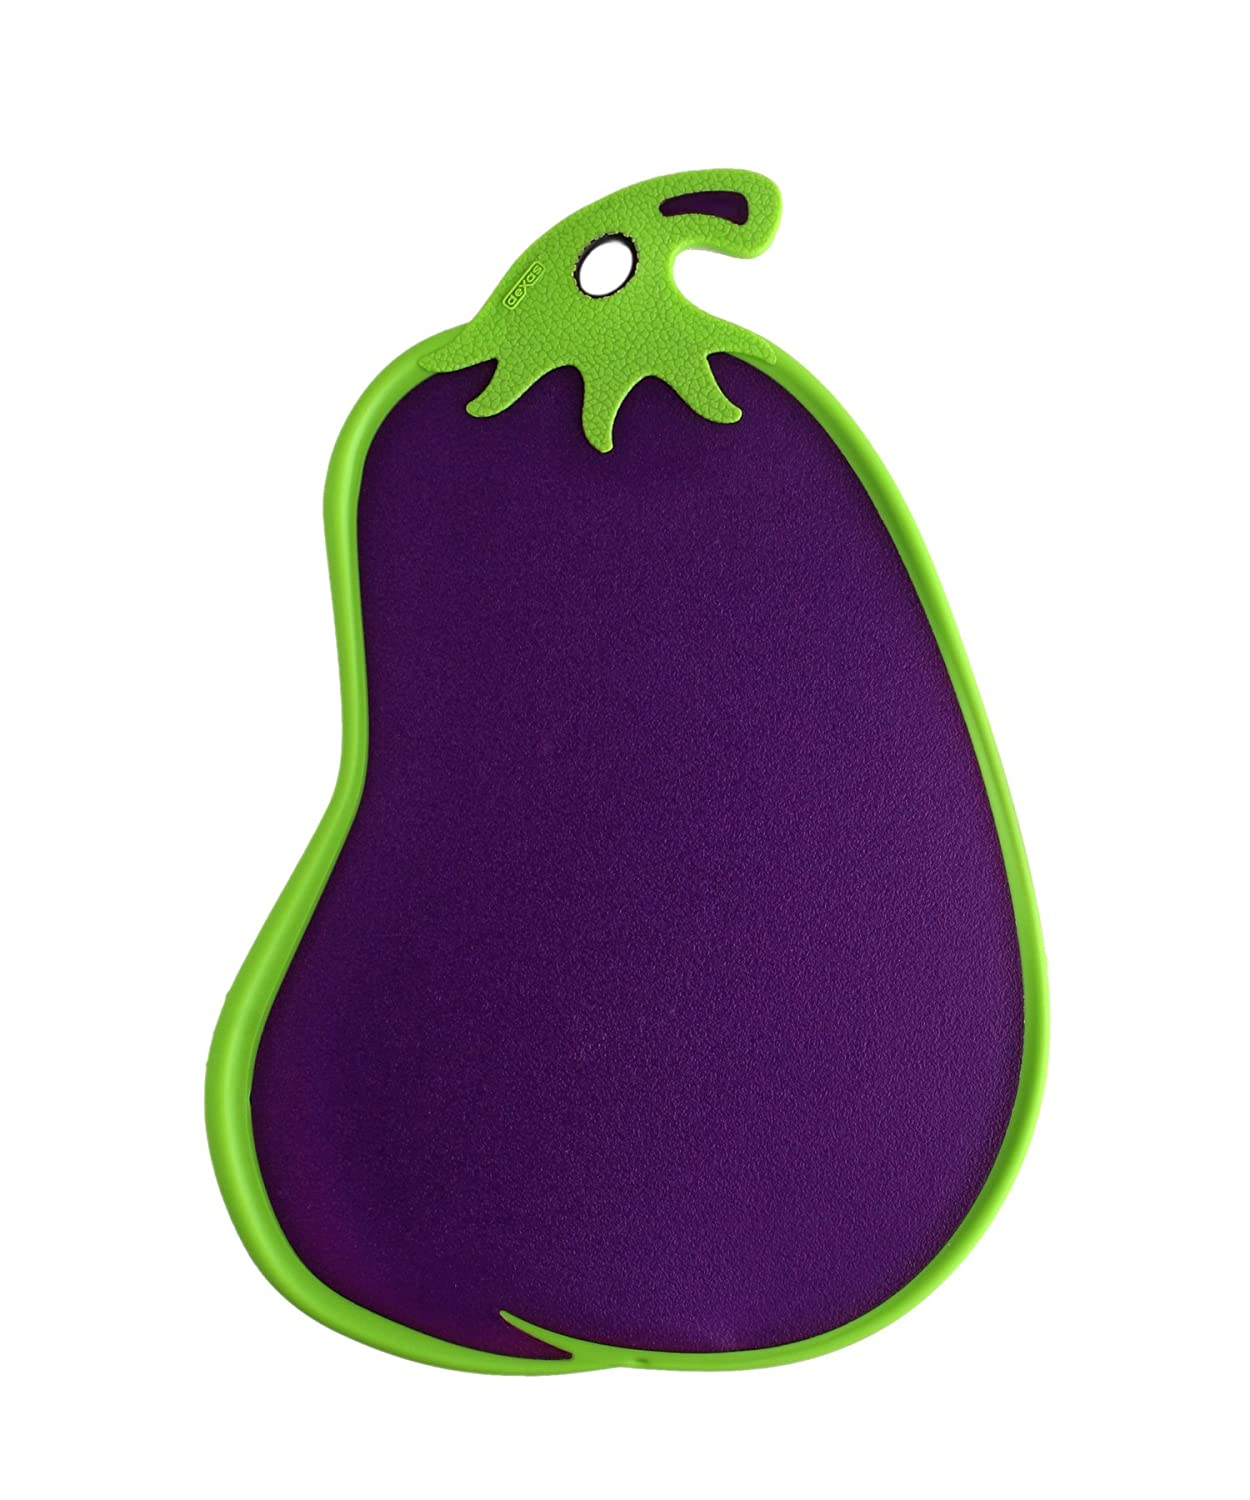 Eggplant kitchen accessories - Amazon Com Dexas Cutting Serving Board Eggplant Shape Purple Cutting Board Kitchen Dining